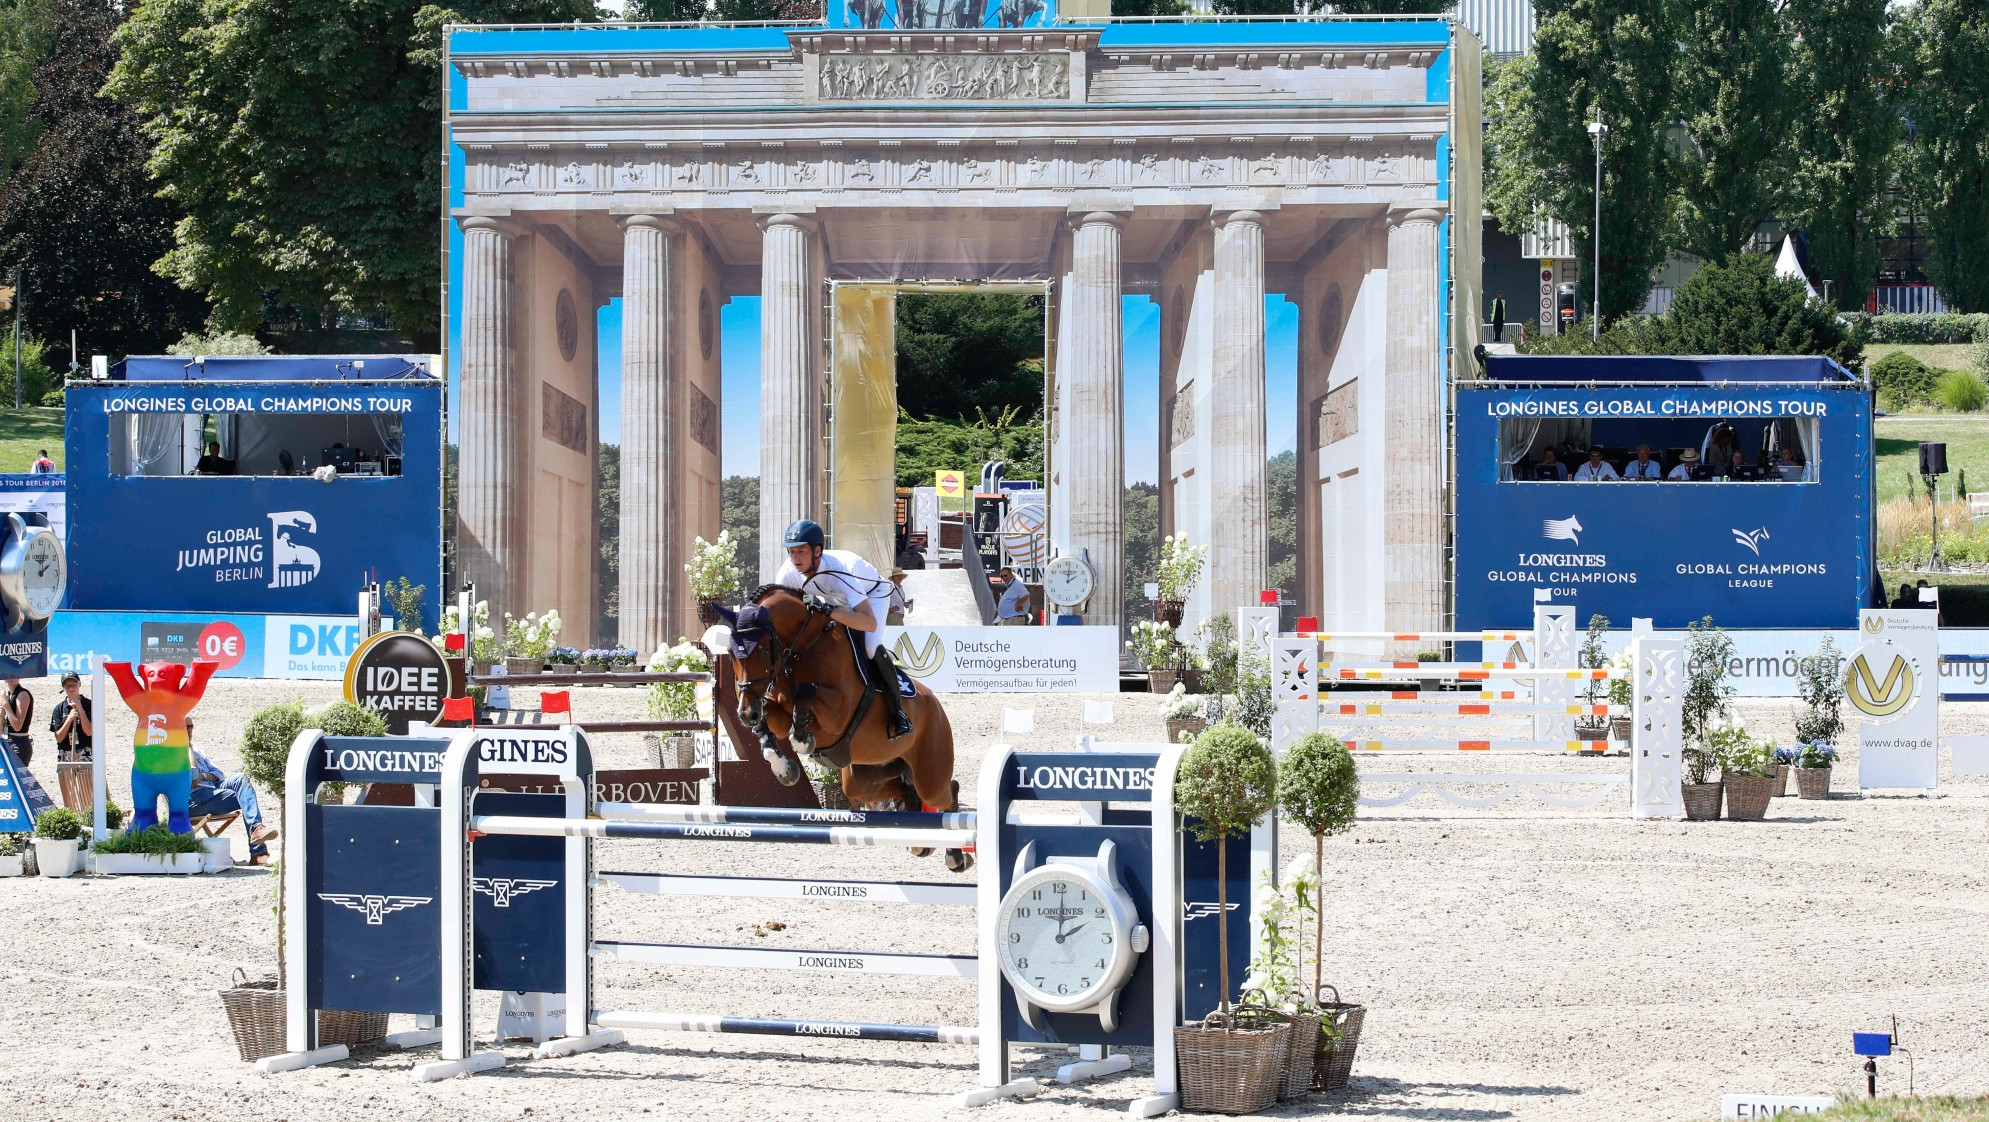 The event in Berlin will be the 13th leg of this year's LGCT circuit ©LGCT/Stefano Grasso